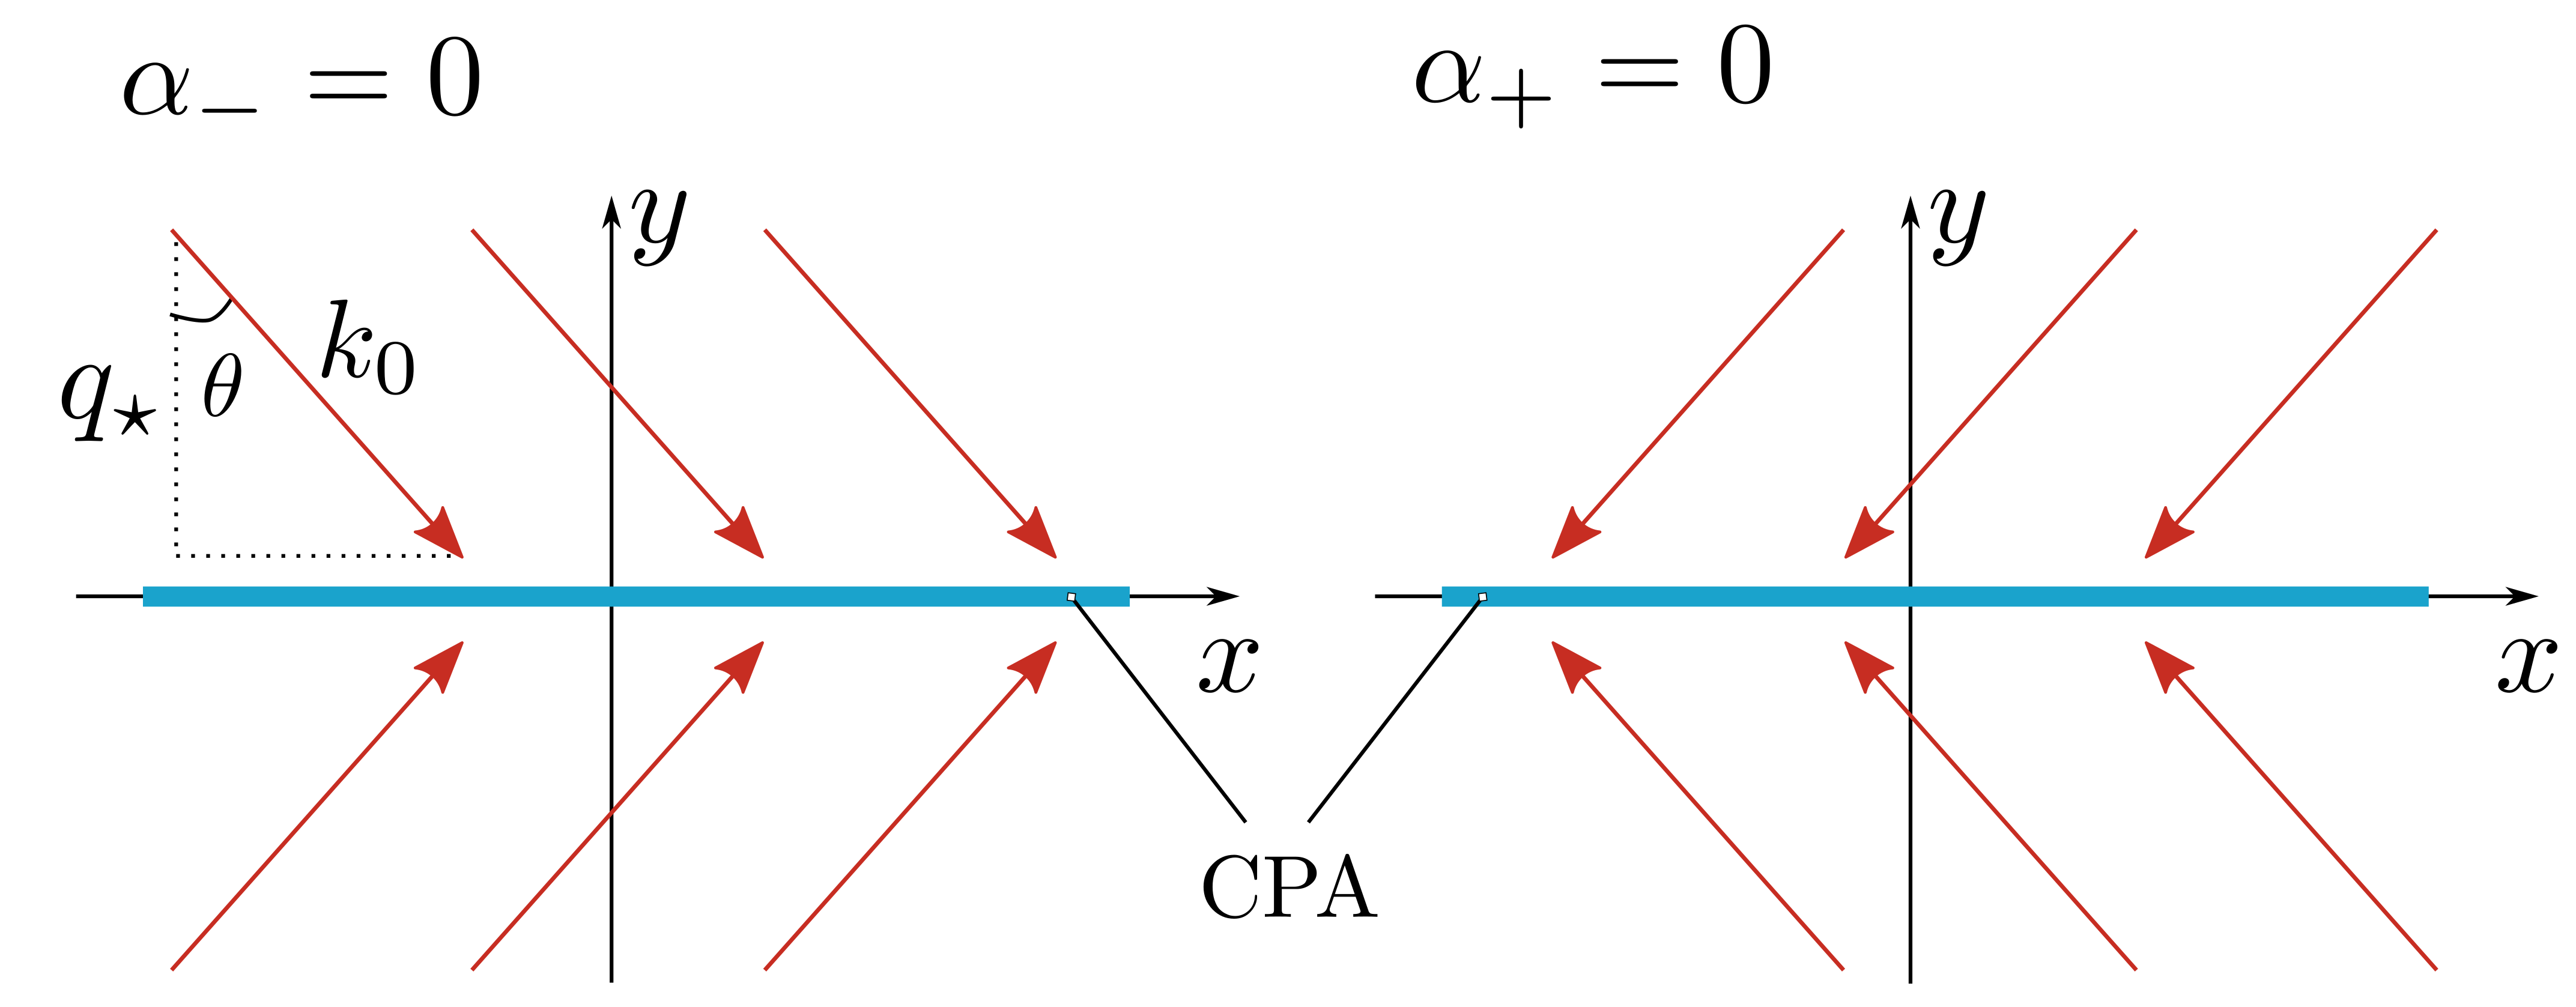 Schematic illustration for the CPA confined in the straight line and the perfectly absorbed solution (